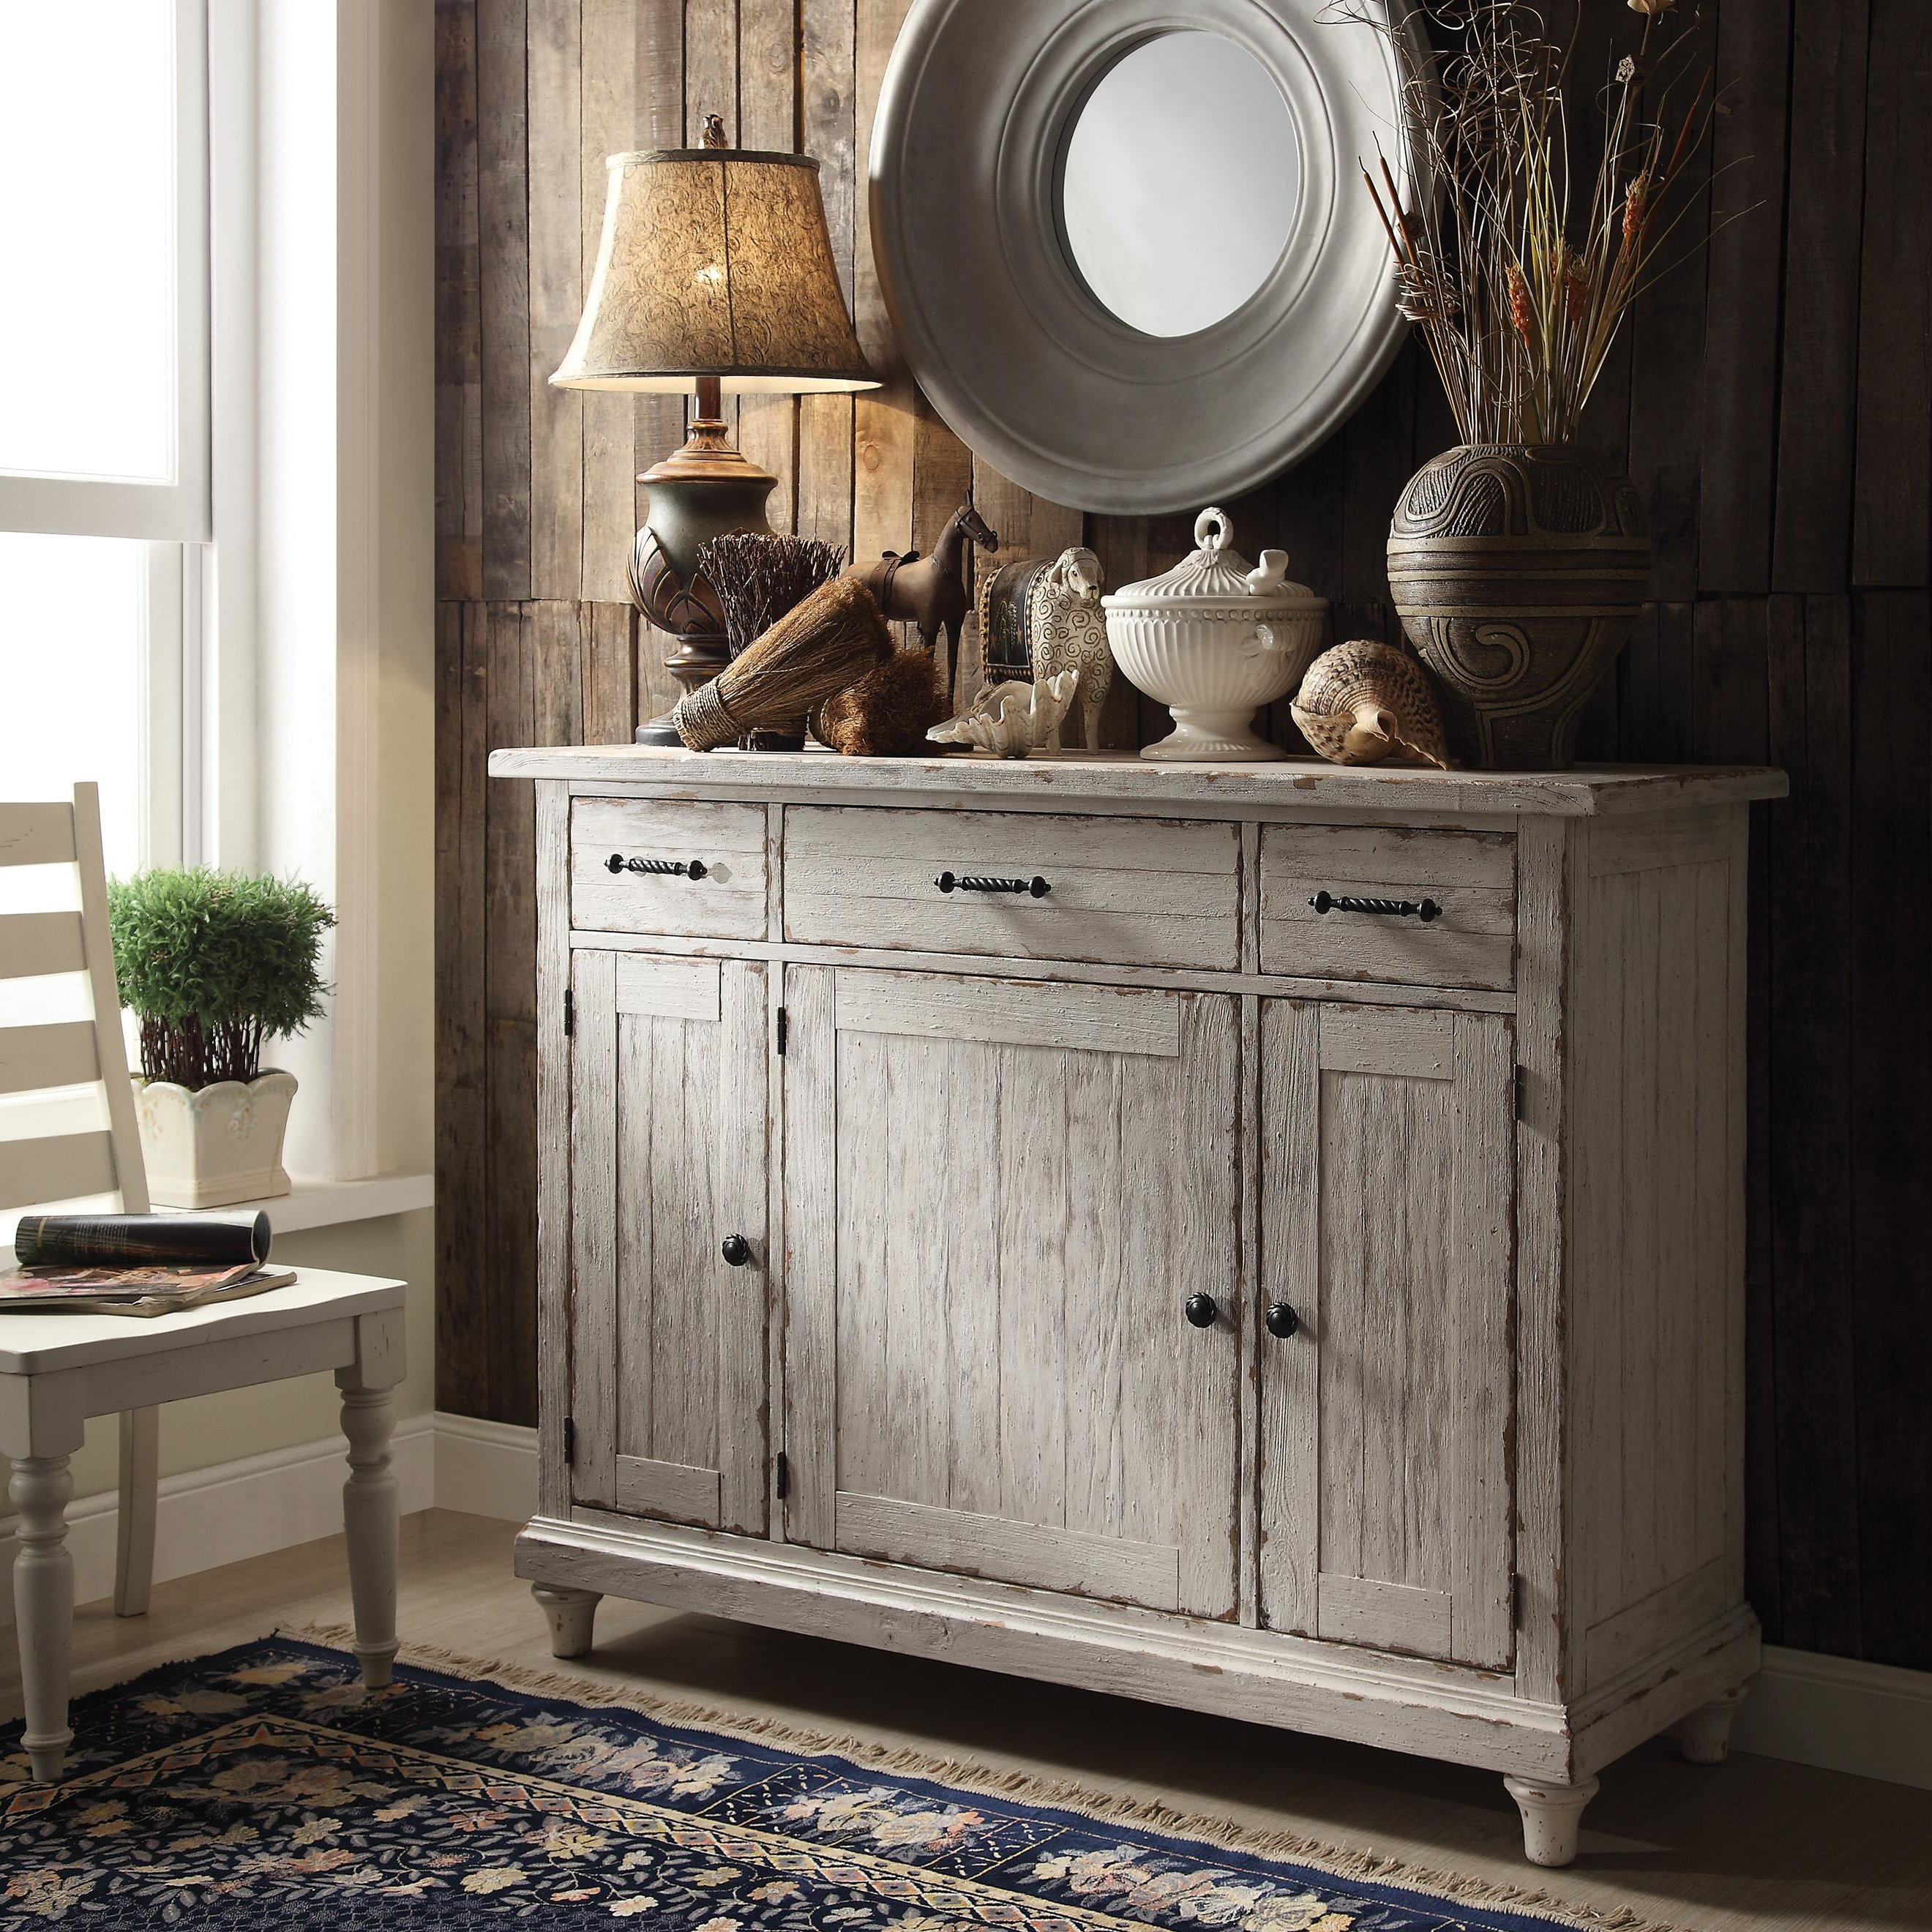 Payton Serving Sideboards Regarding Newest Farmhouse & Rustic Sideboards & Buffets (View 18 of 20)